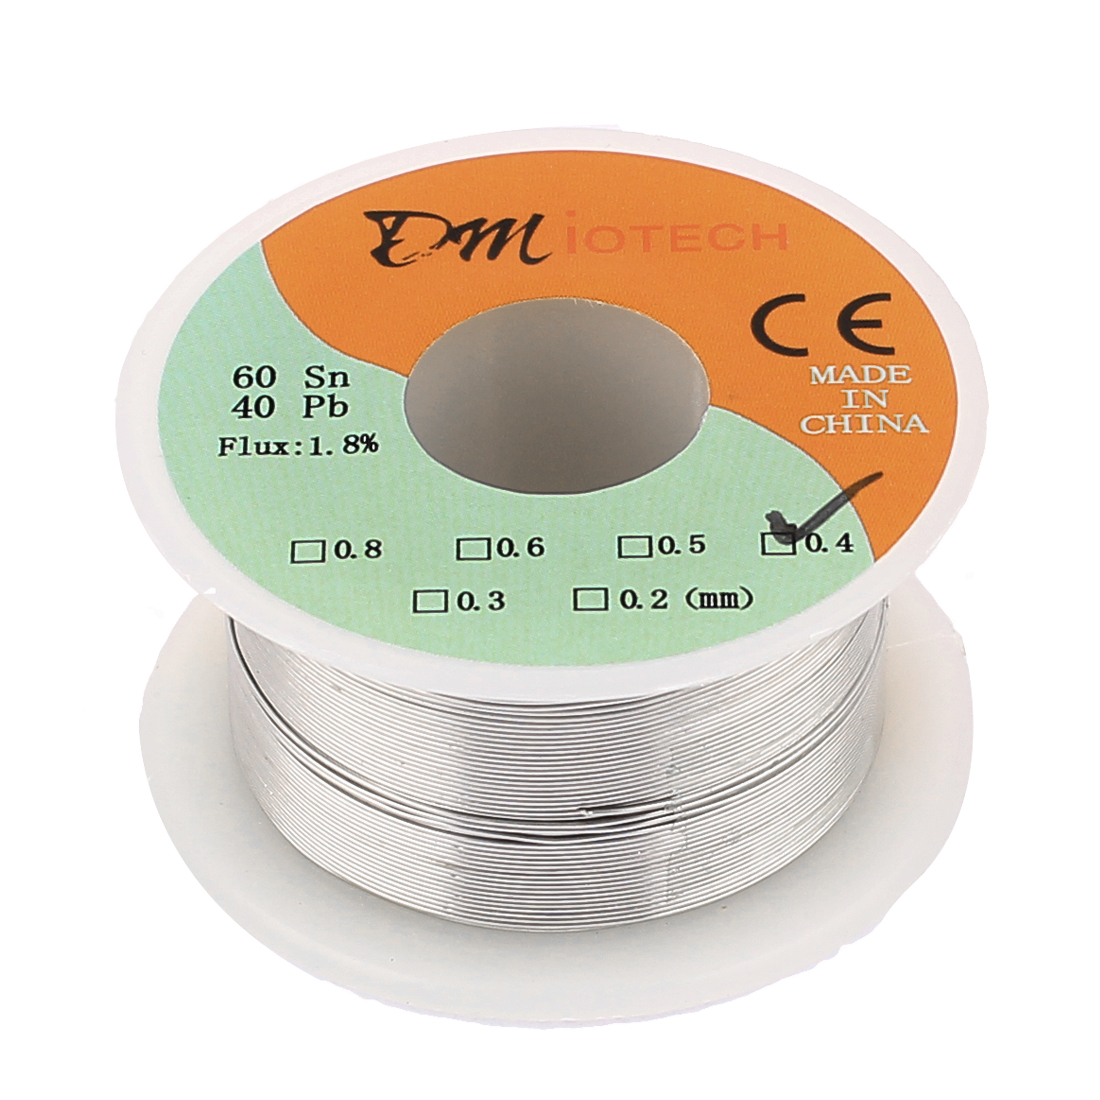 0.4mm 50G 60/40 Rosin Core Tin Lead Roll Soldering Solder Wire